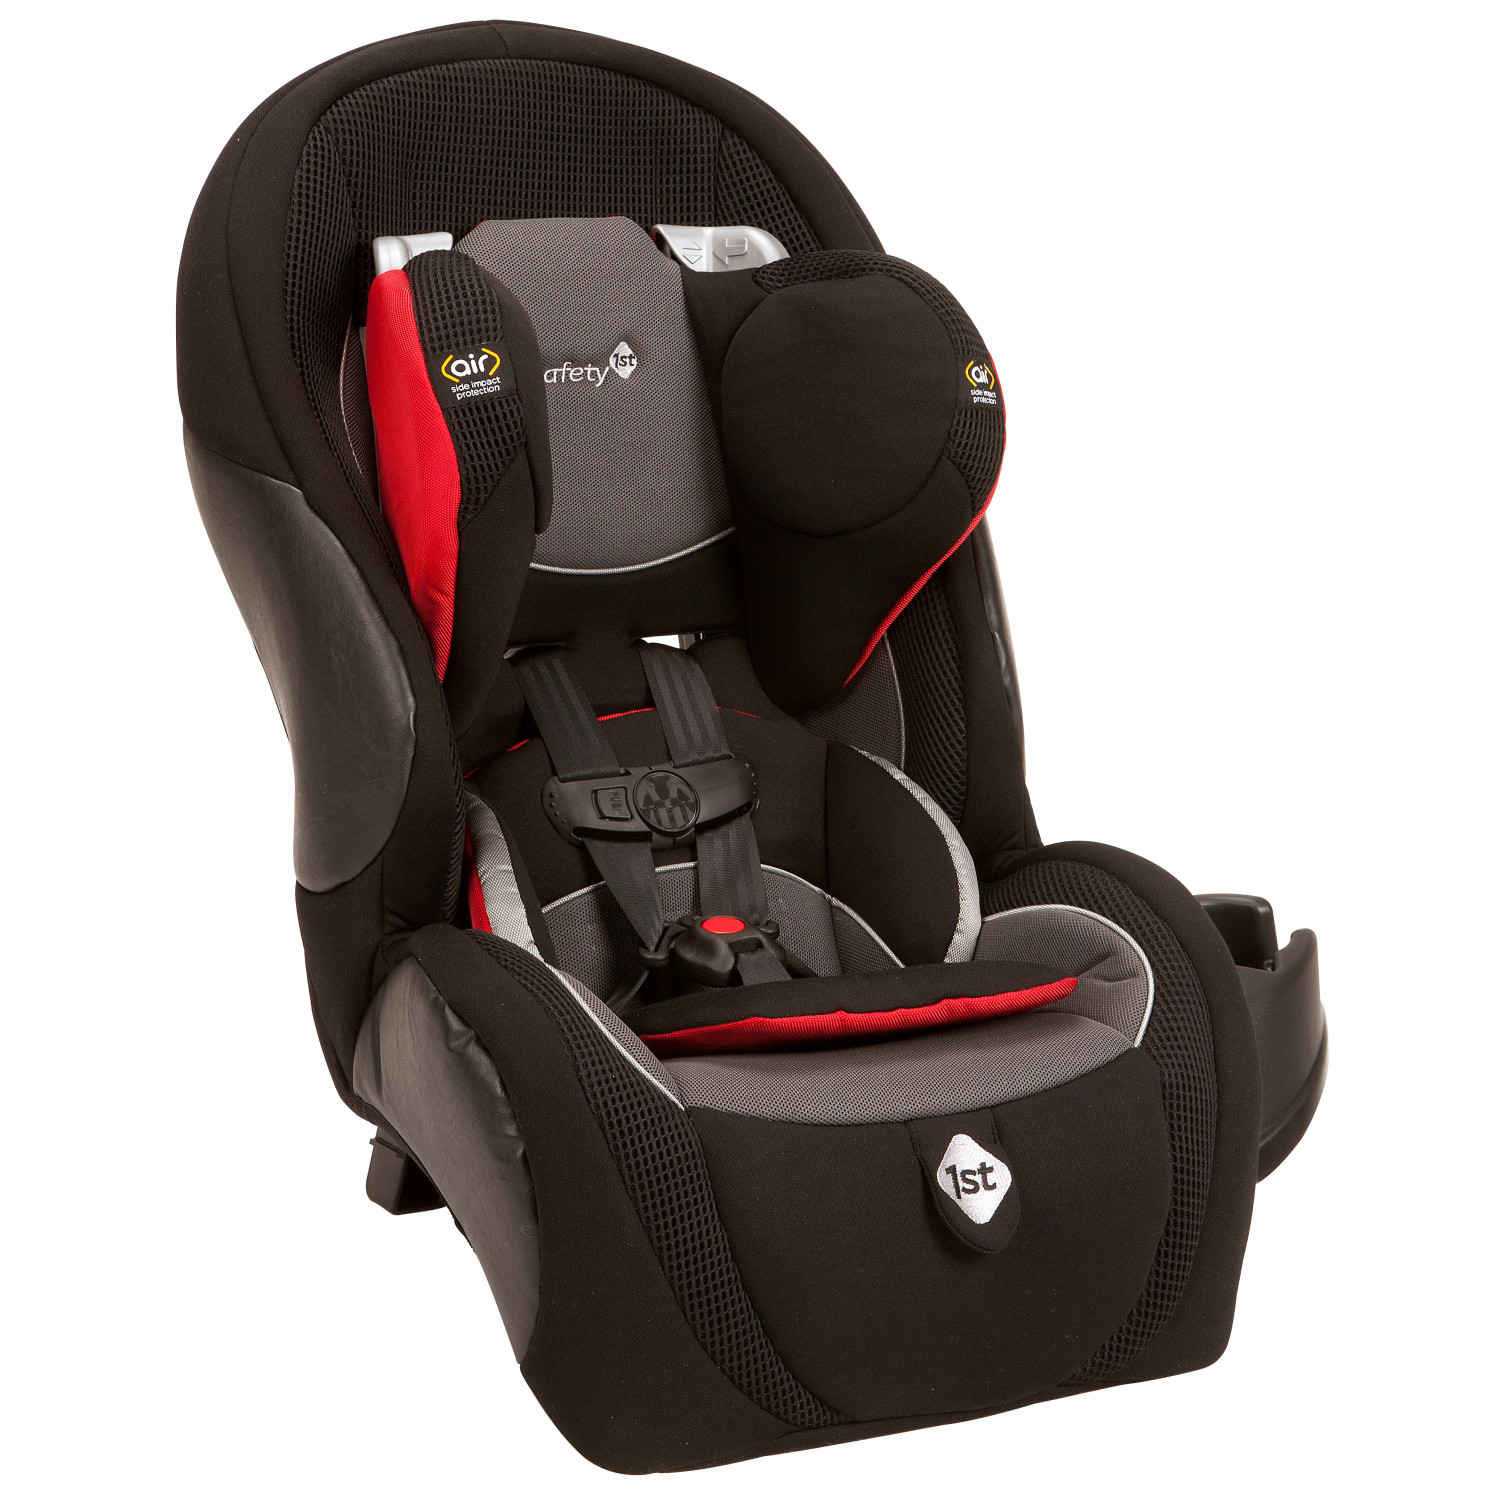 Safety-1st-Complete-Air-65-Convertible-Car-Seat thumbnail 39